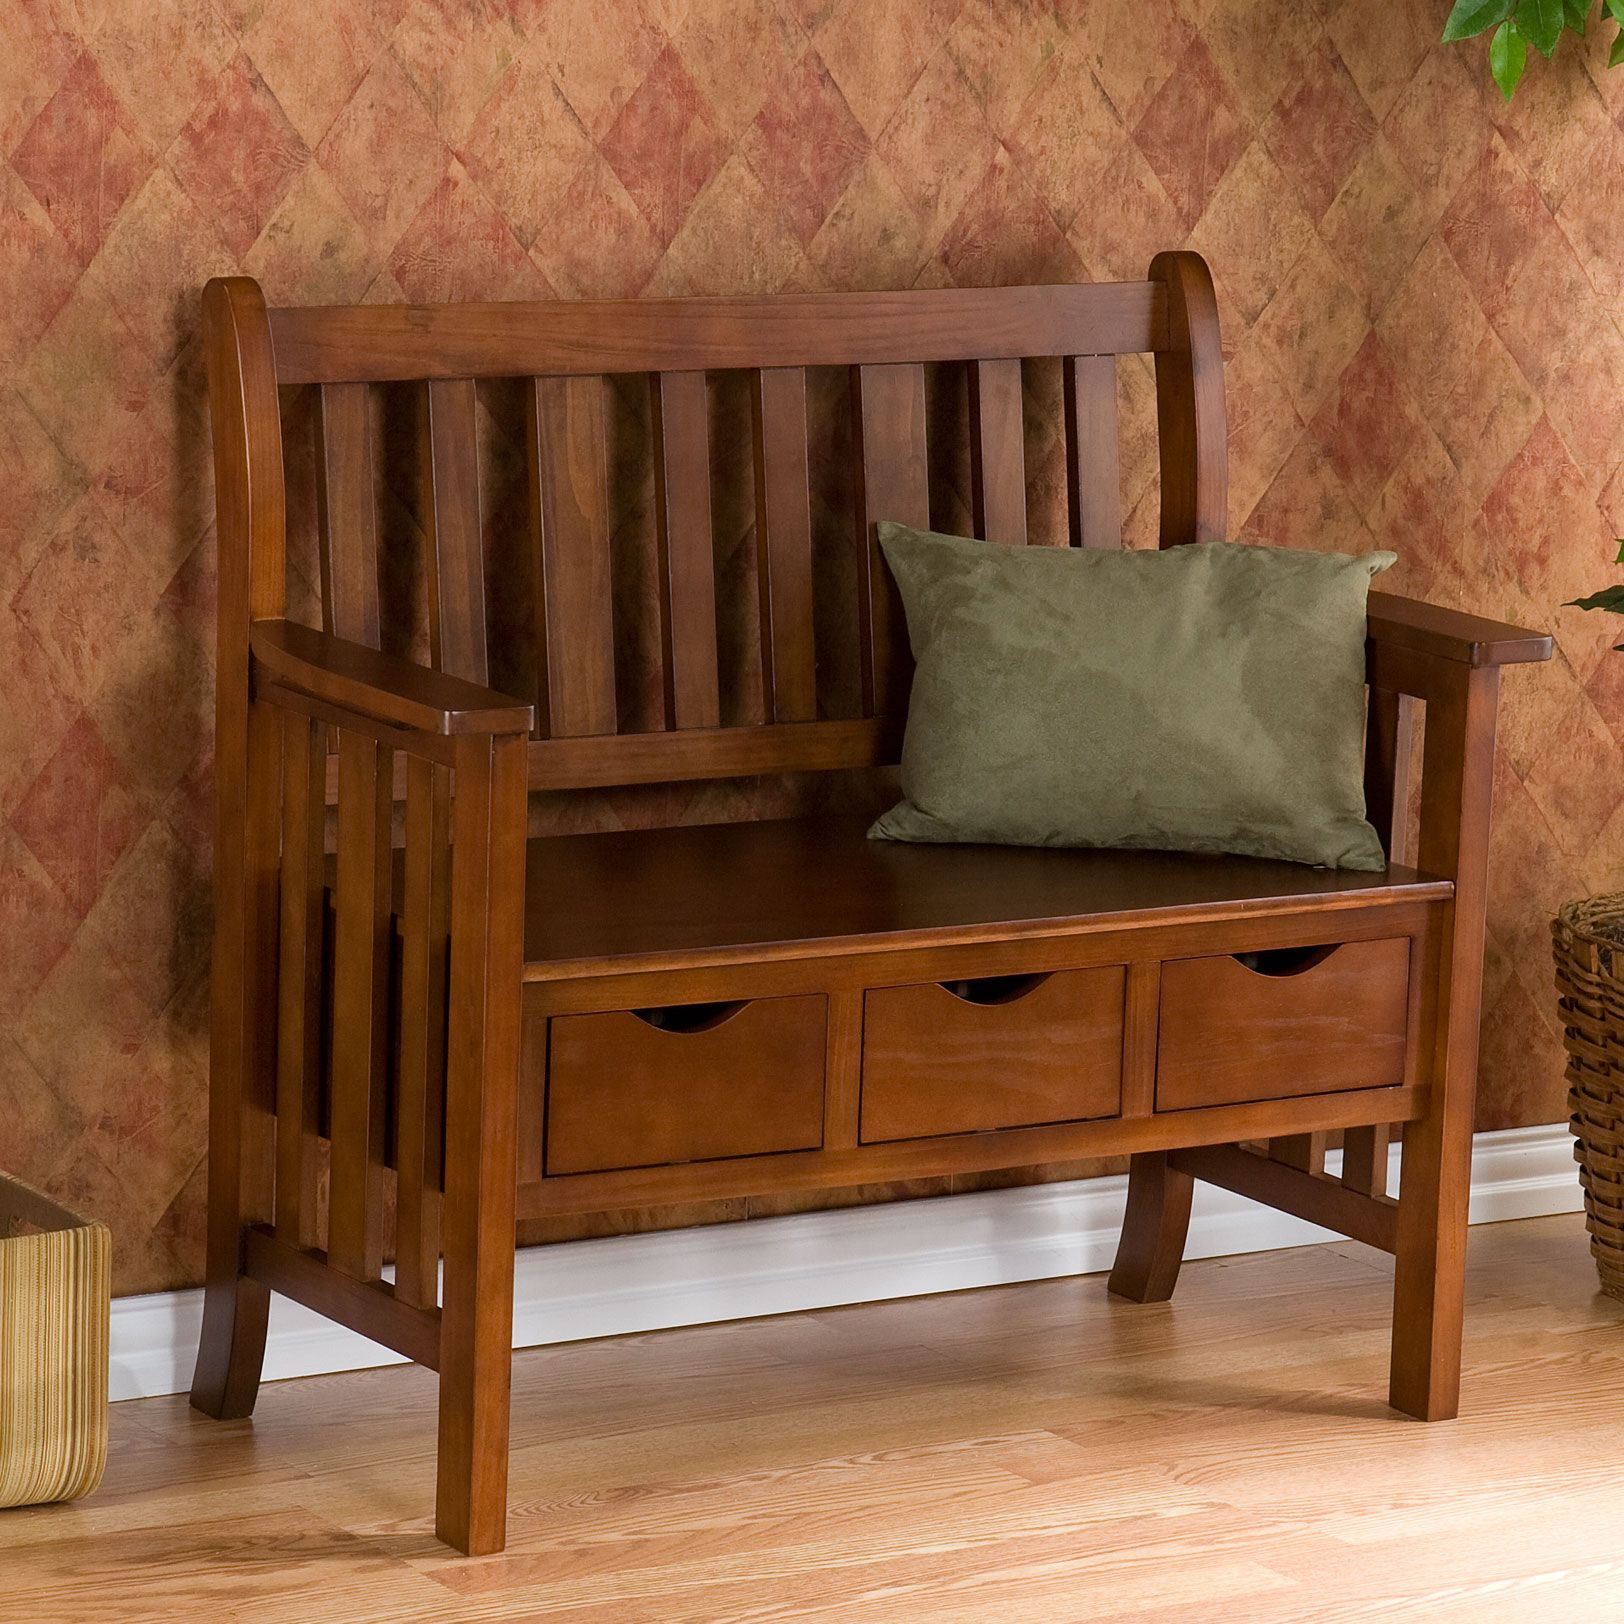 3 Drawer Country Bench Accent Furniture Brylanehome